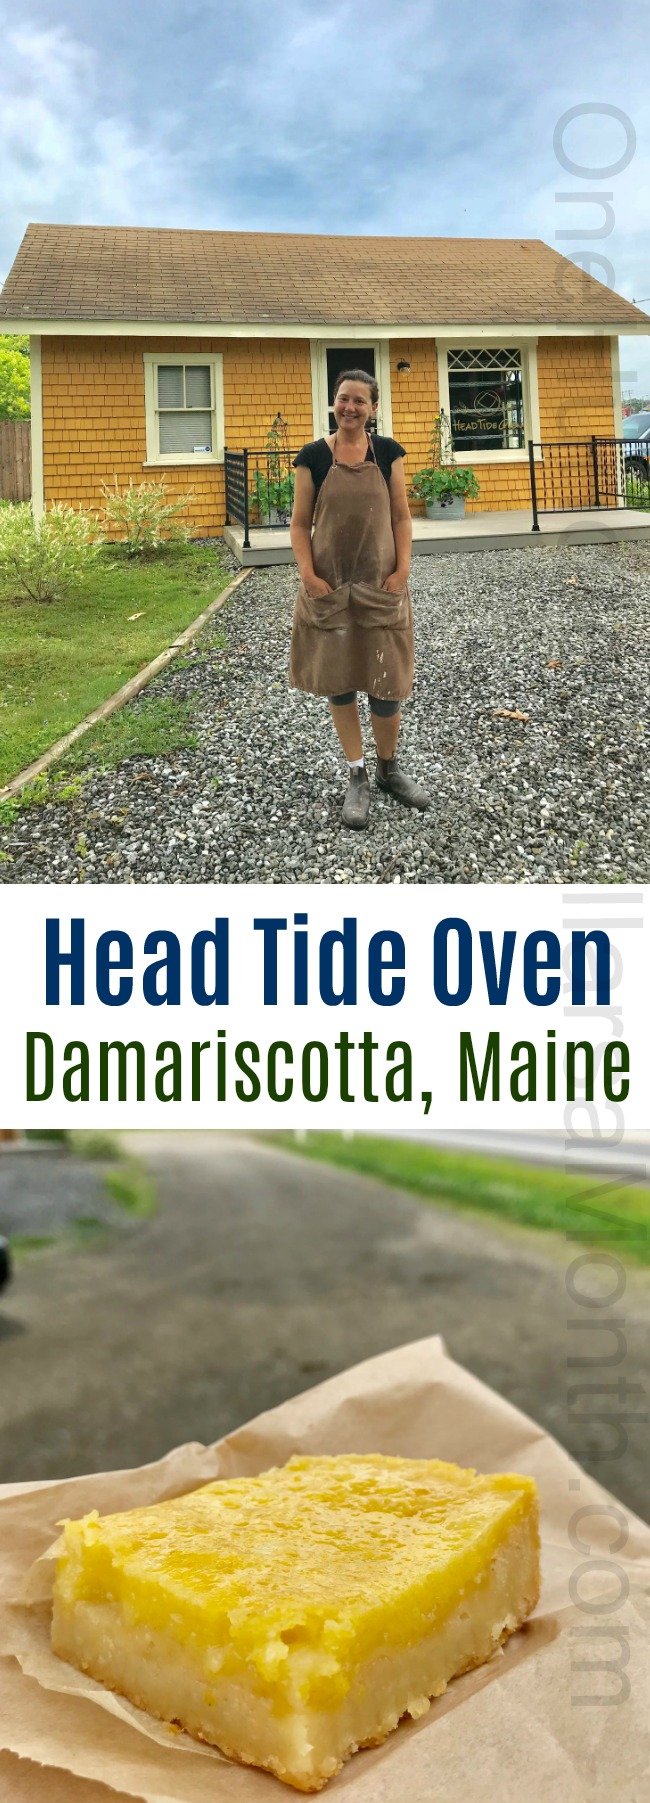 Save the Bakeries – Head Tide Oven in Damariscotta, Maine